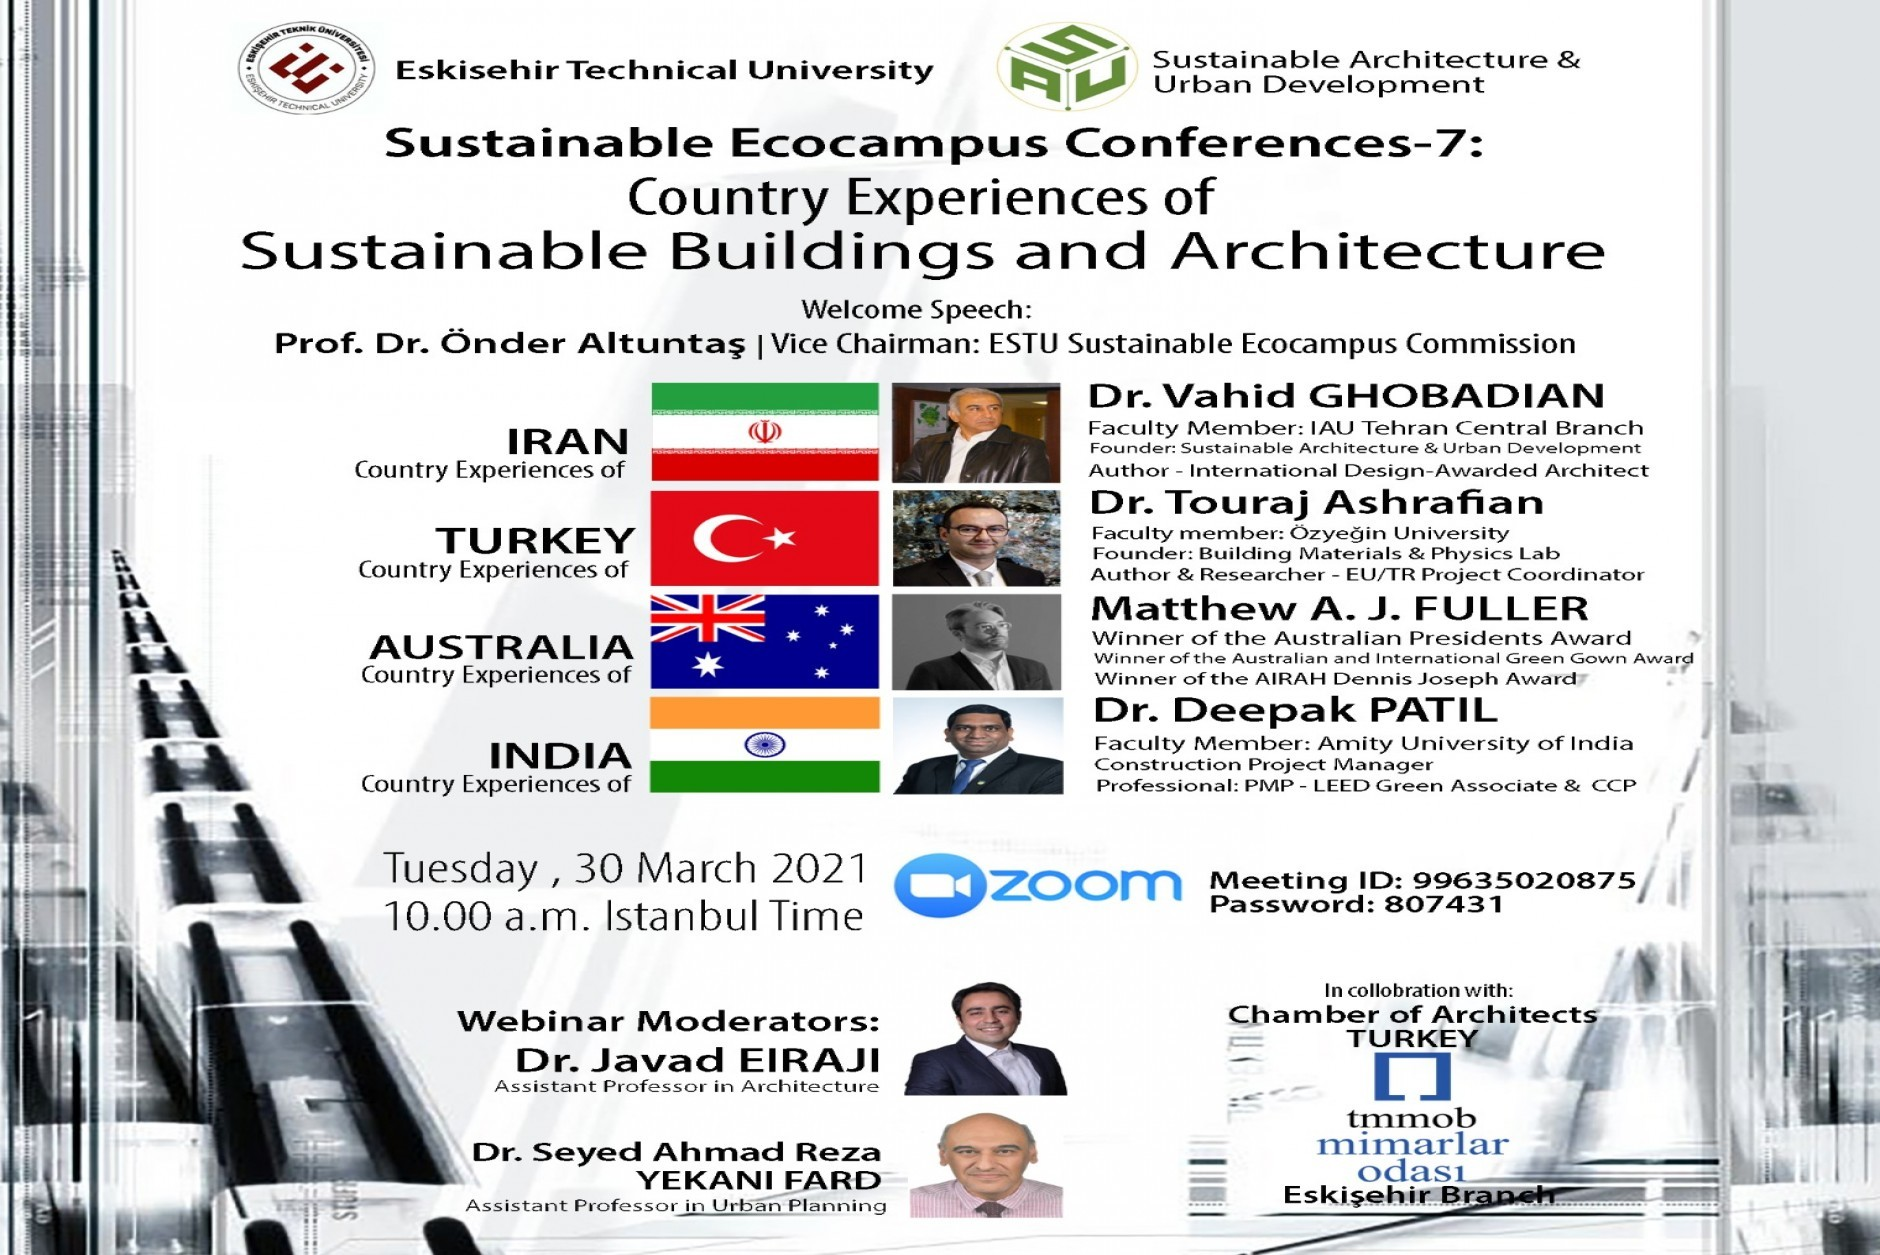 Sustainable Ecocampus Conferences-7: program